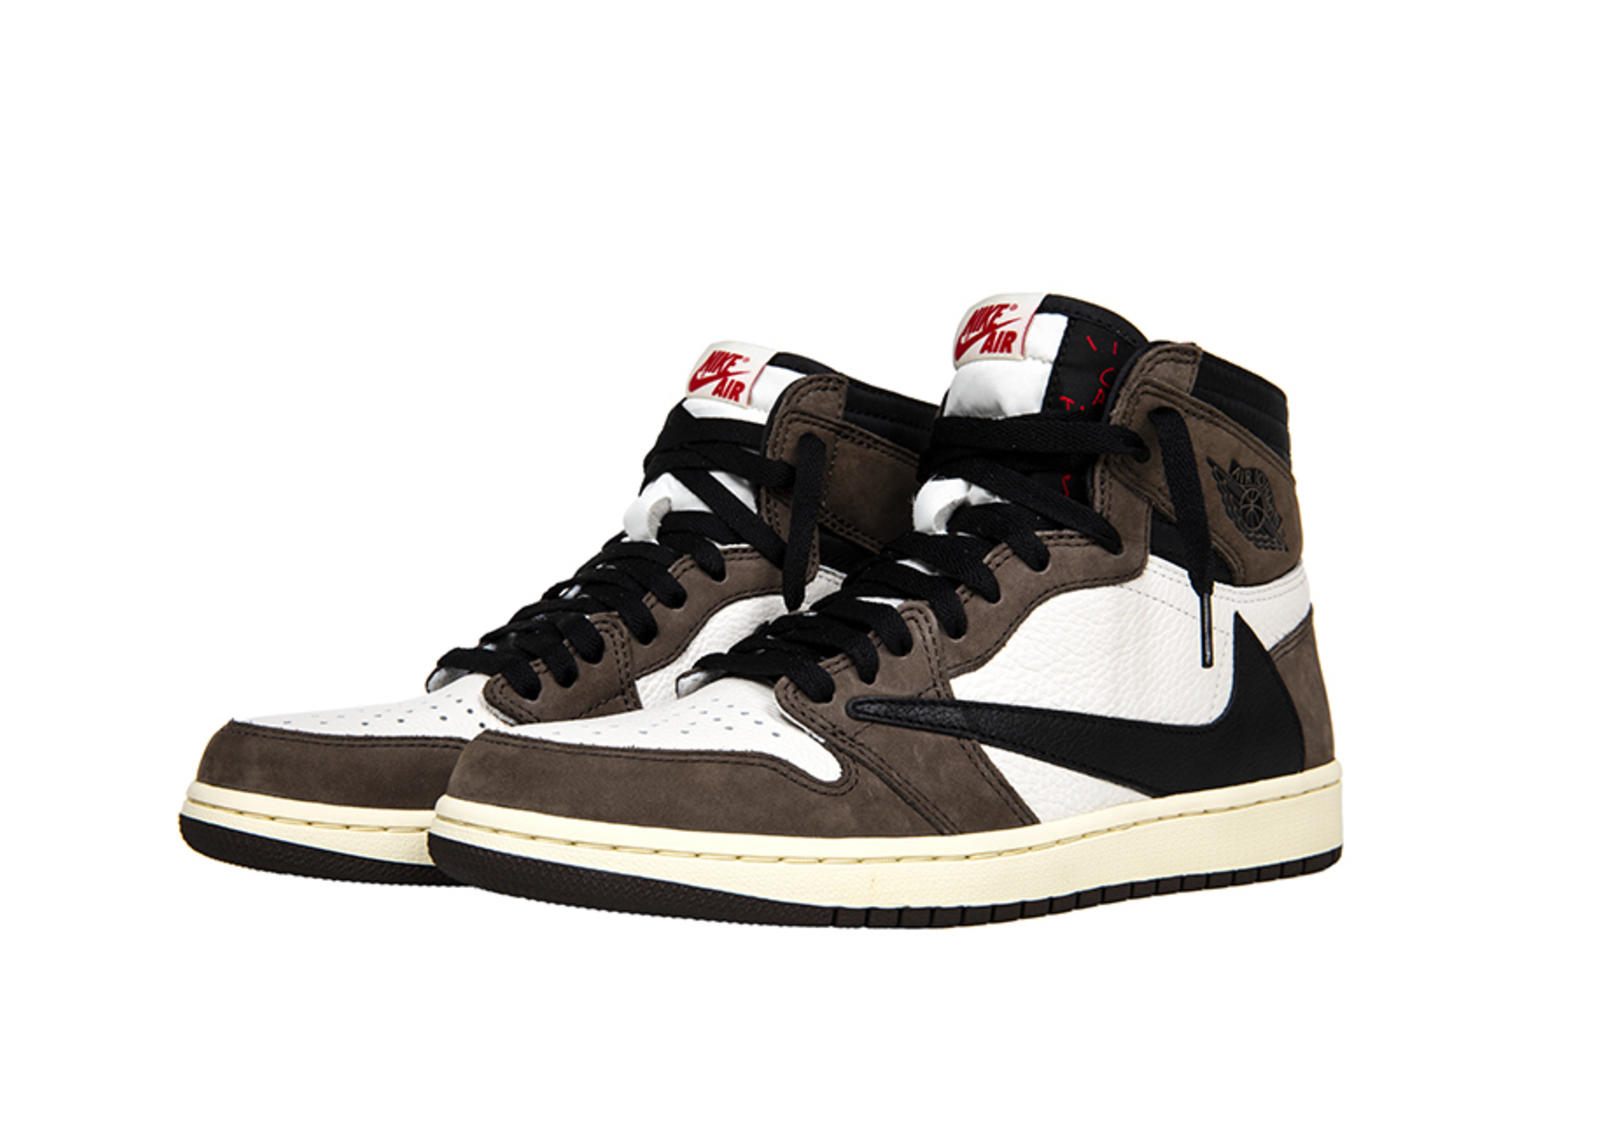 Perceptible Año Nuevo Lunar vía  Travis Scott Air Jordan I High OG and Apparel Collection Official Images  and Release Date - Nike News